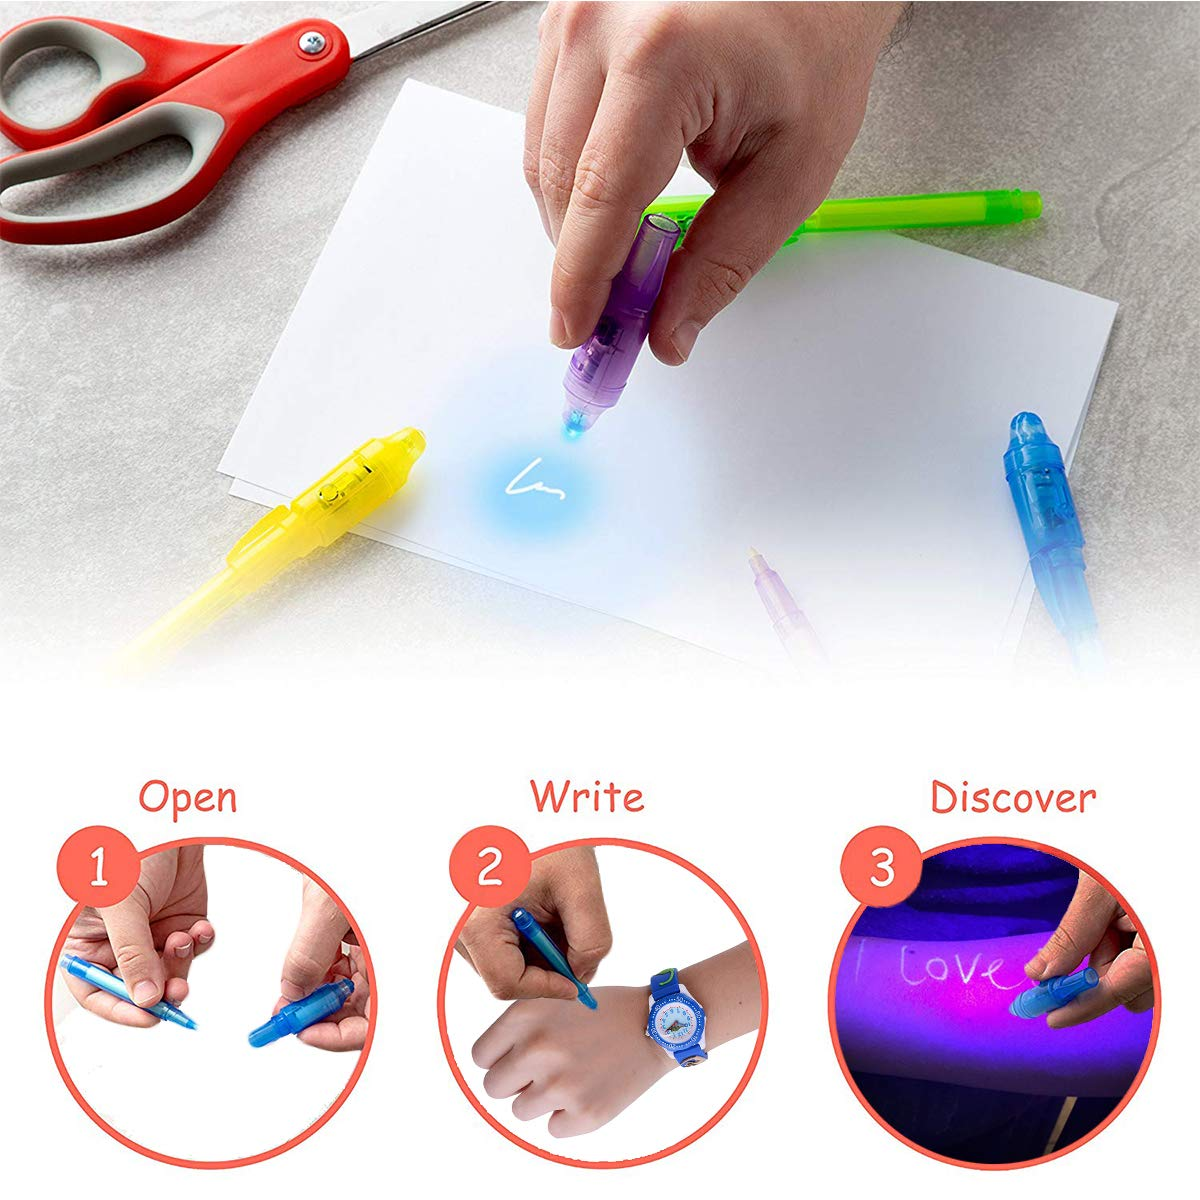 Joyjam Toys for 3-8 Year Old Boys Girls Invisible Ink Pen Spy Gear for Kids Magic Pen with UV Light Party Favors for Kids Christmas Novelty Gifts Stocking Stuffers (12 Pack) by Joyjam (Image #2)